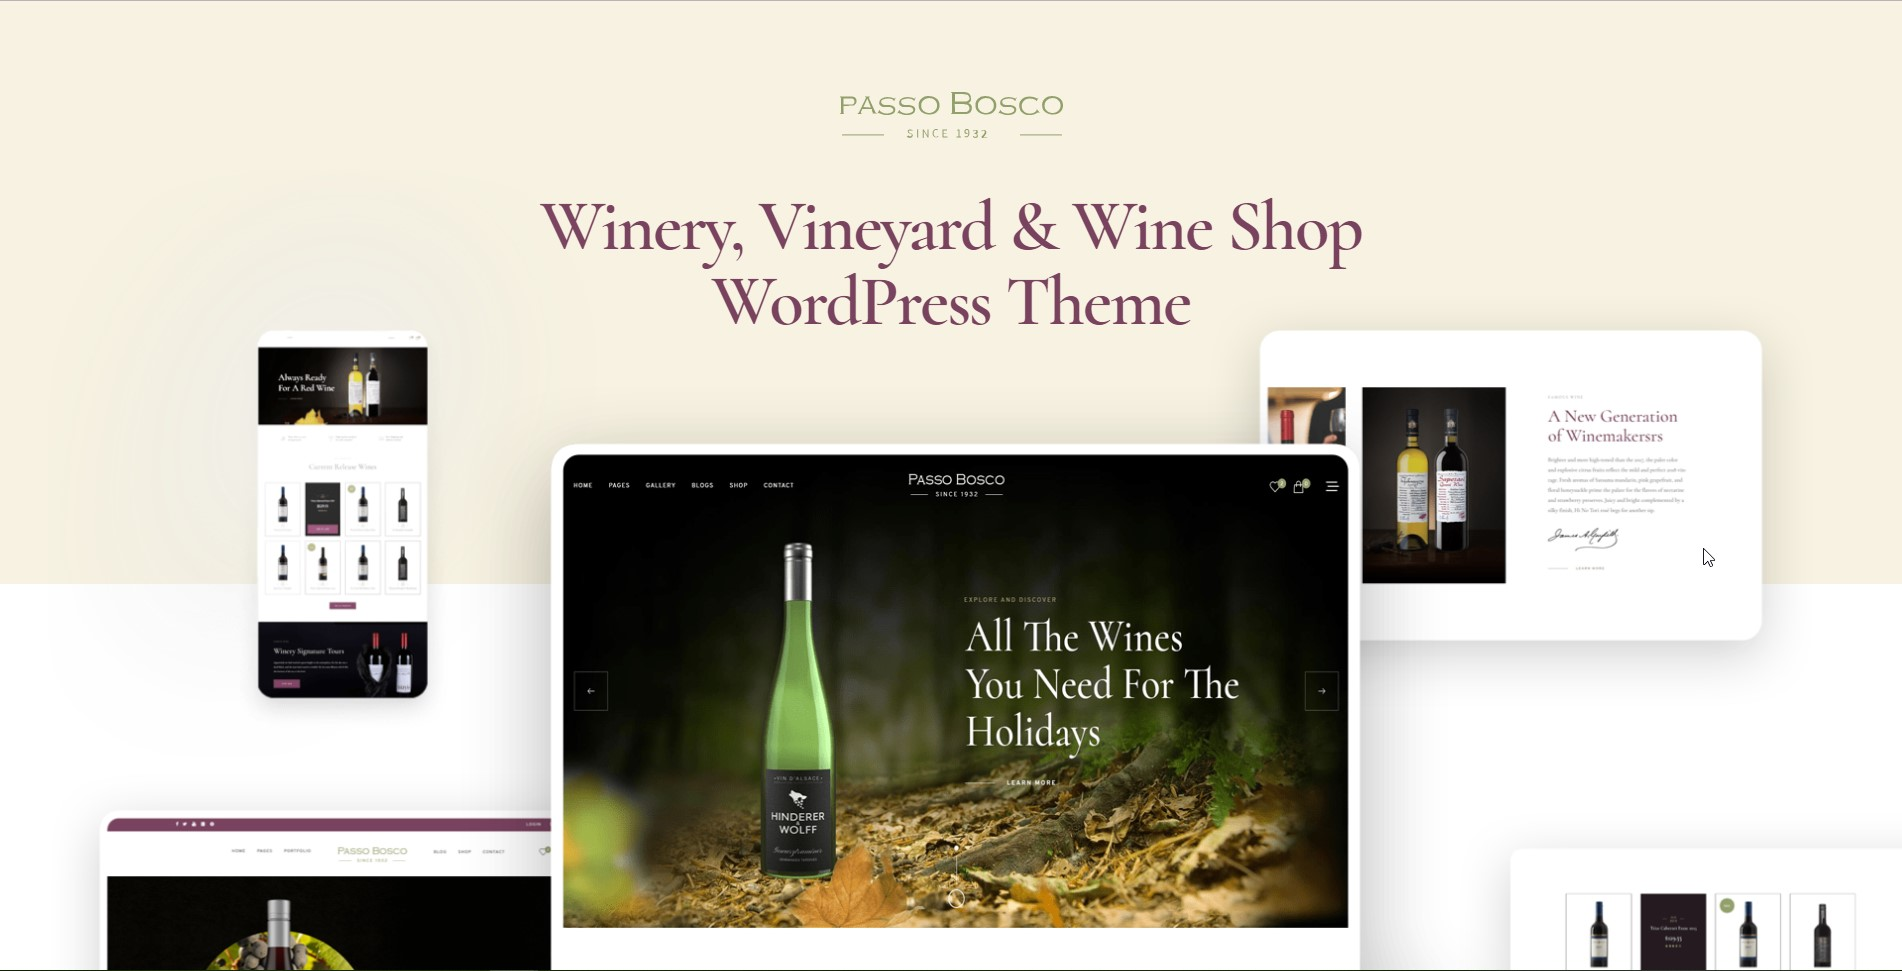 Passo Bosco Wine & Winery WordPress Theme